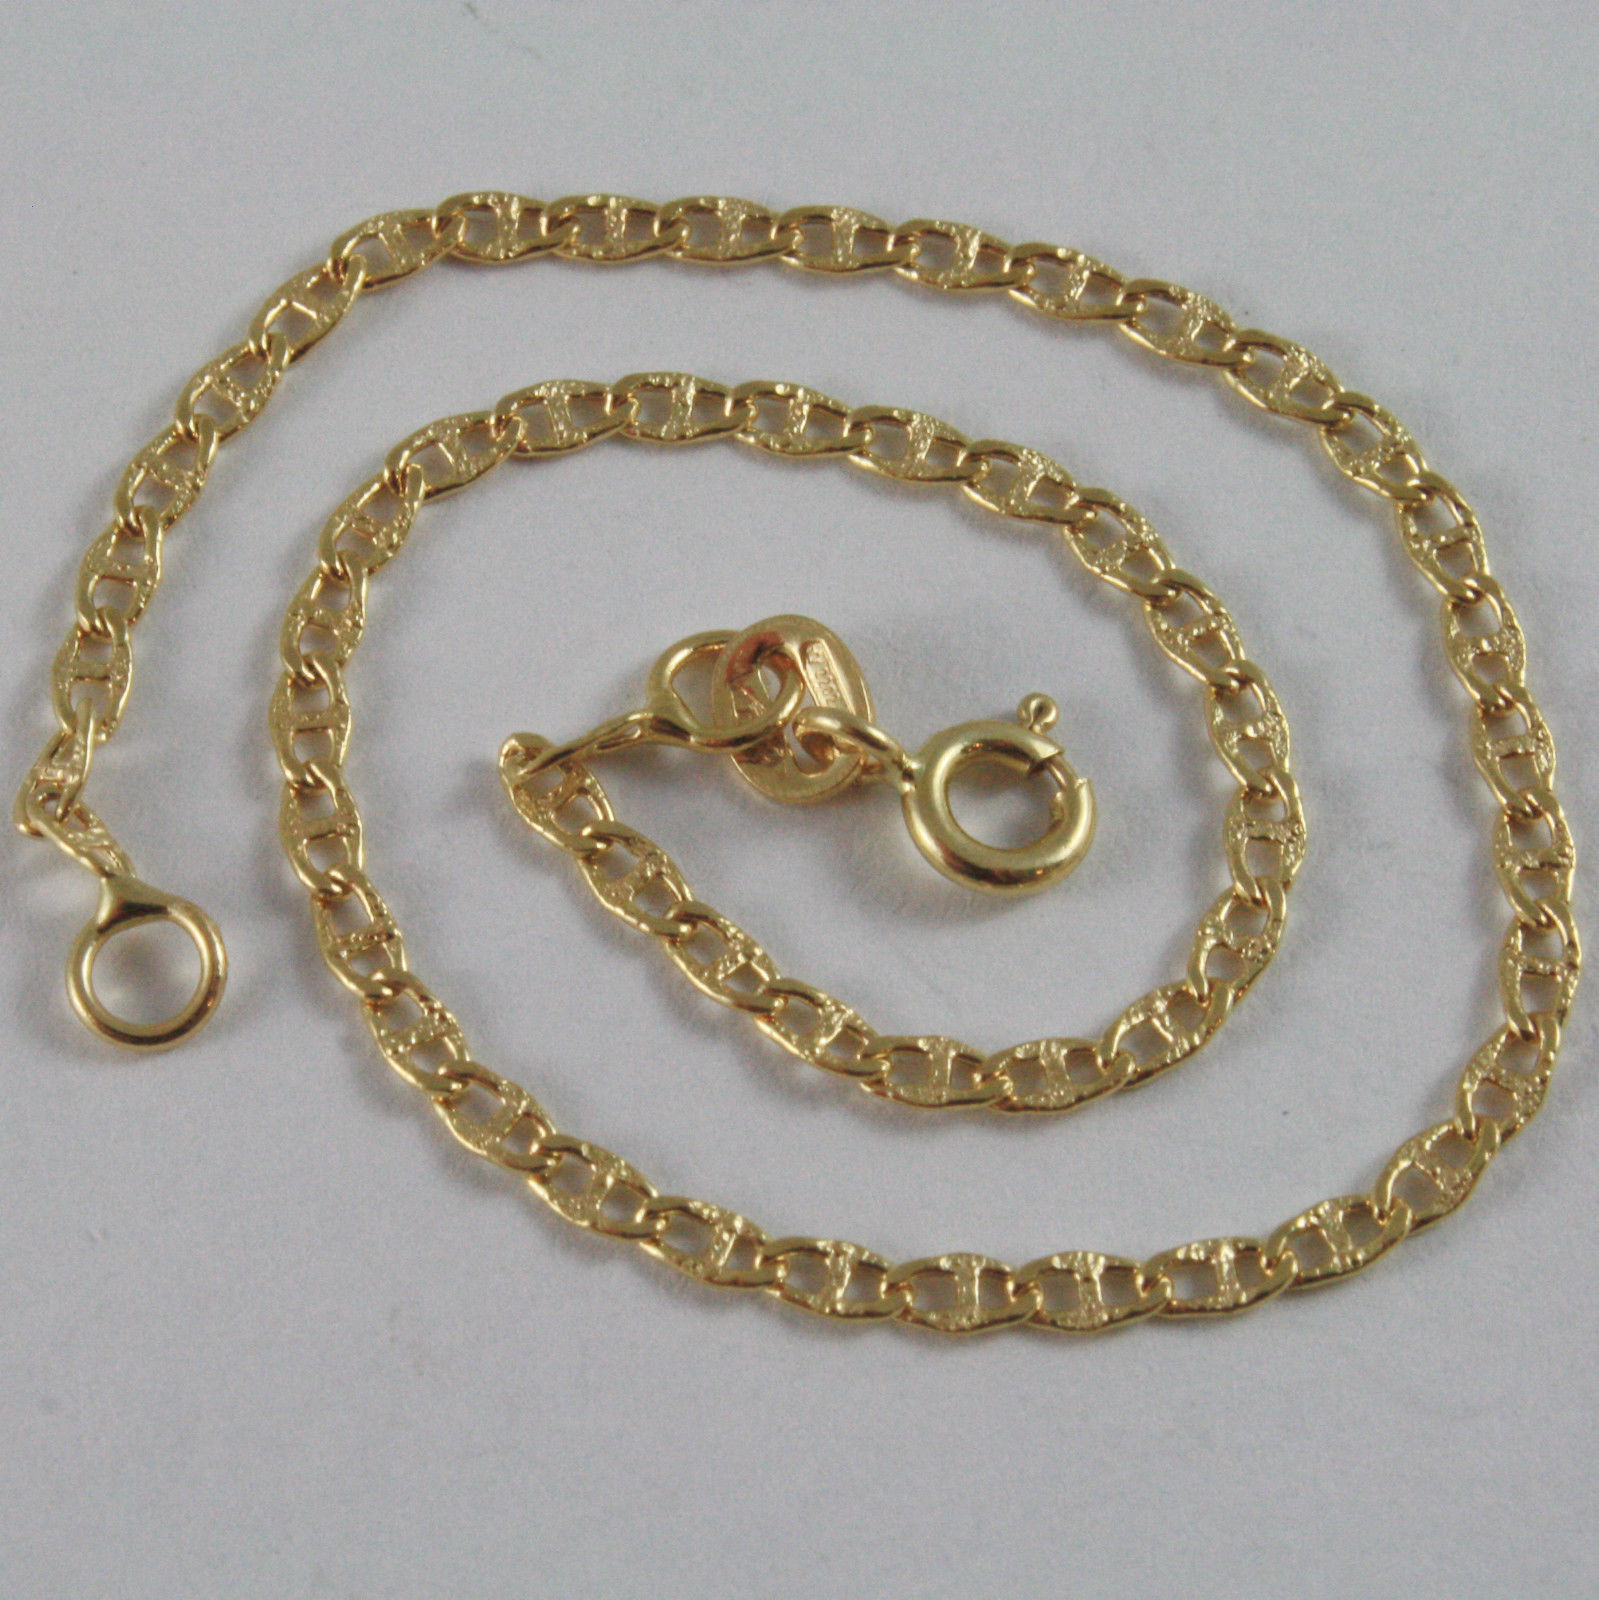 SOLID 18K YELLOW GOLD BRACELET WITH SAILORS NAVY BUBBLE MESH, MADE IN ITALY